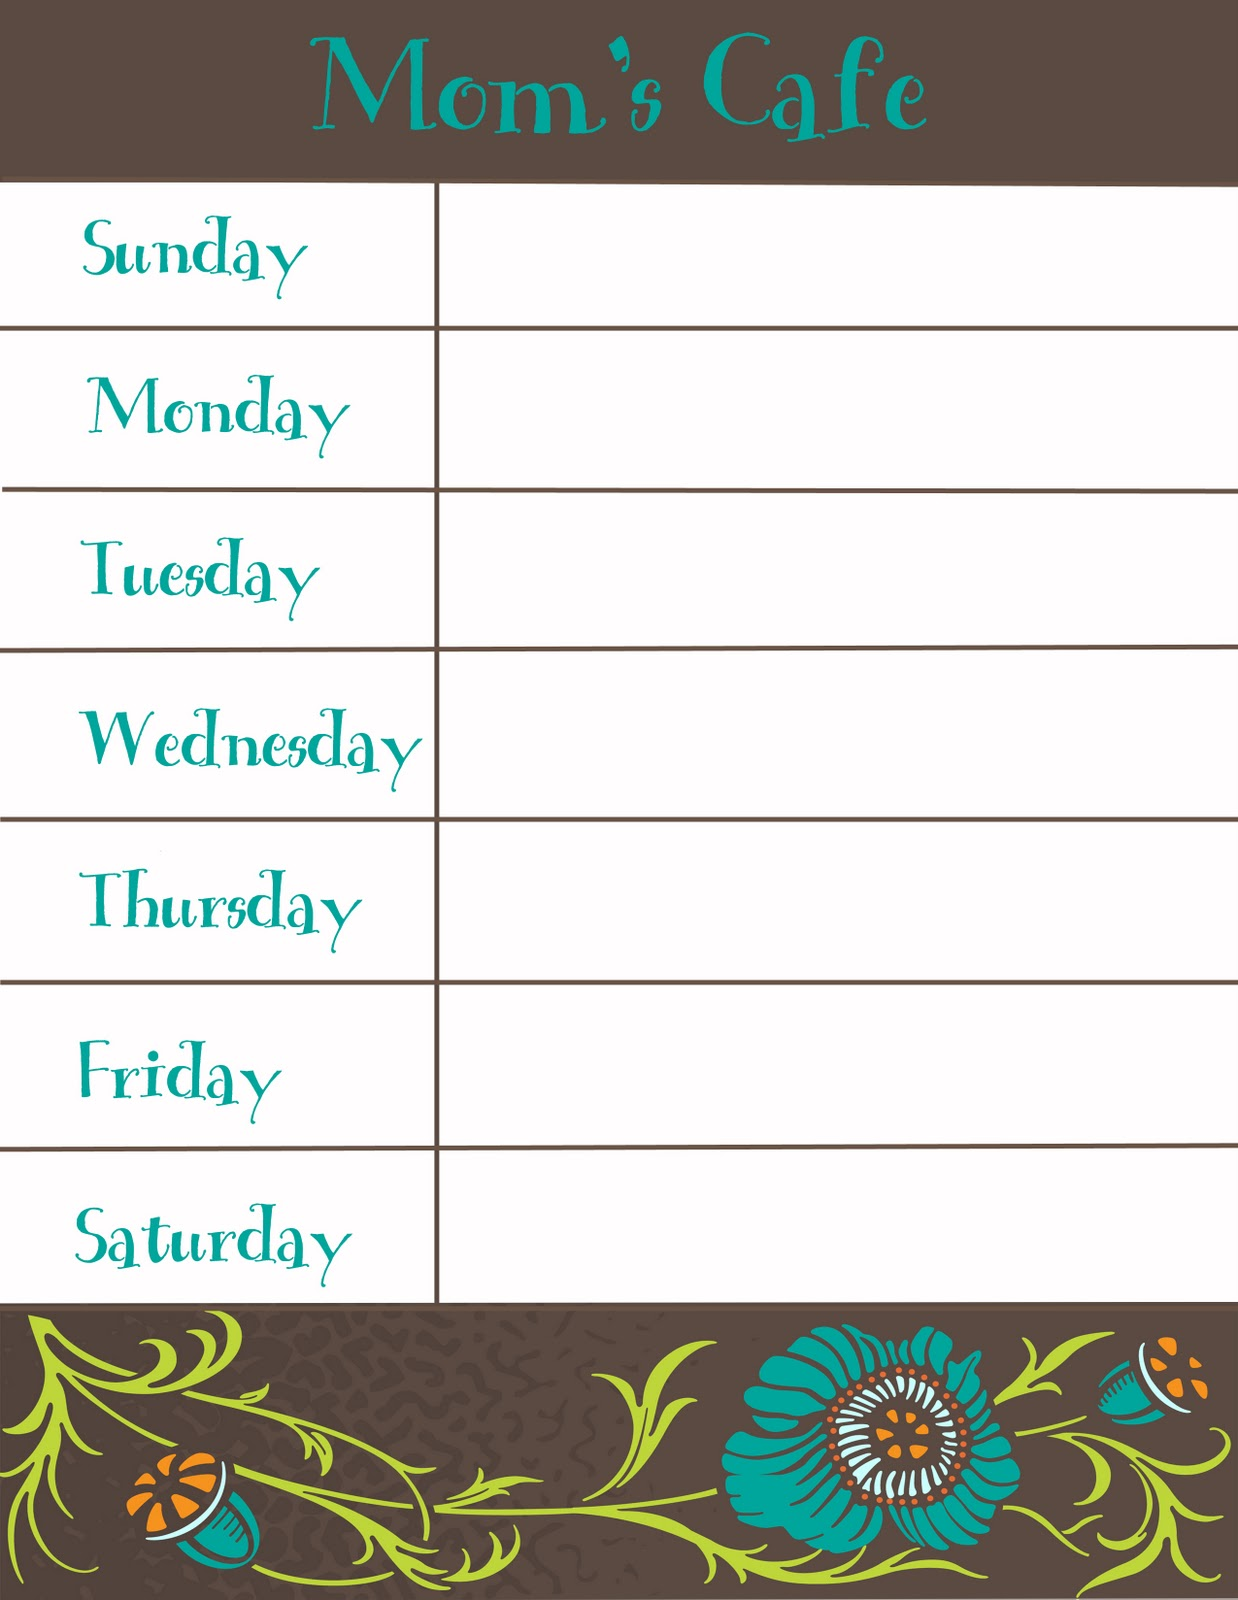 Unforgettable image pertaining to menu planner printable